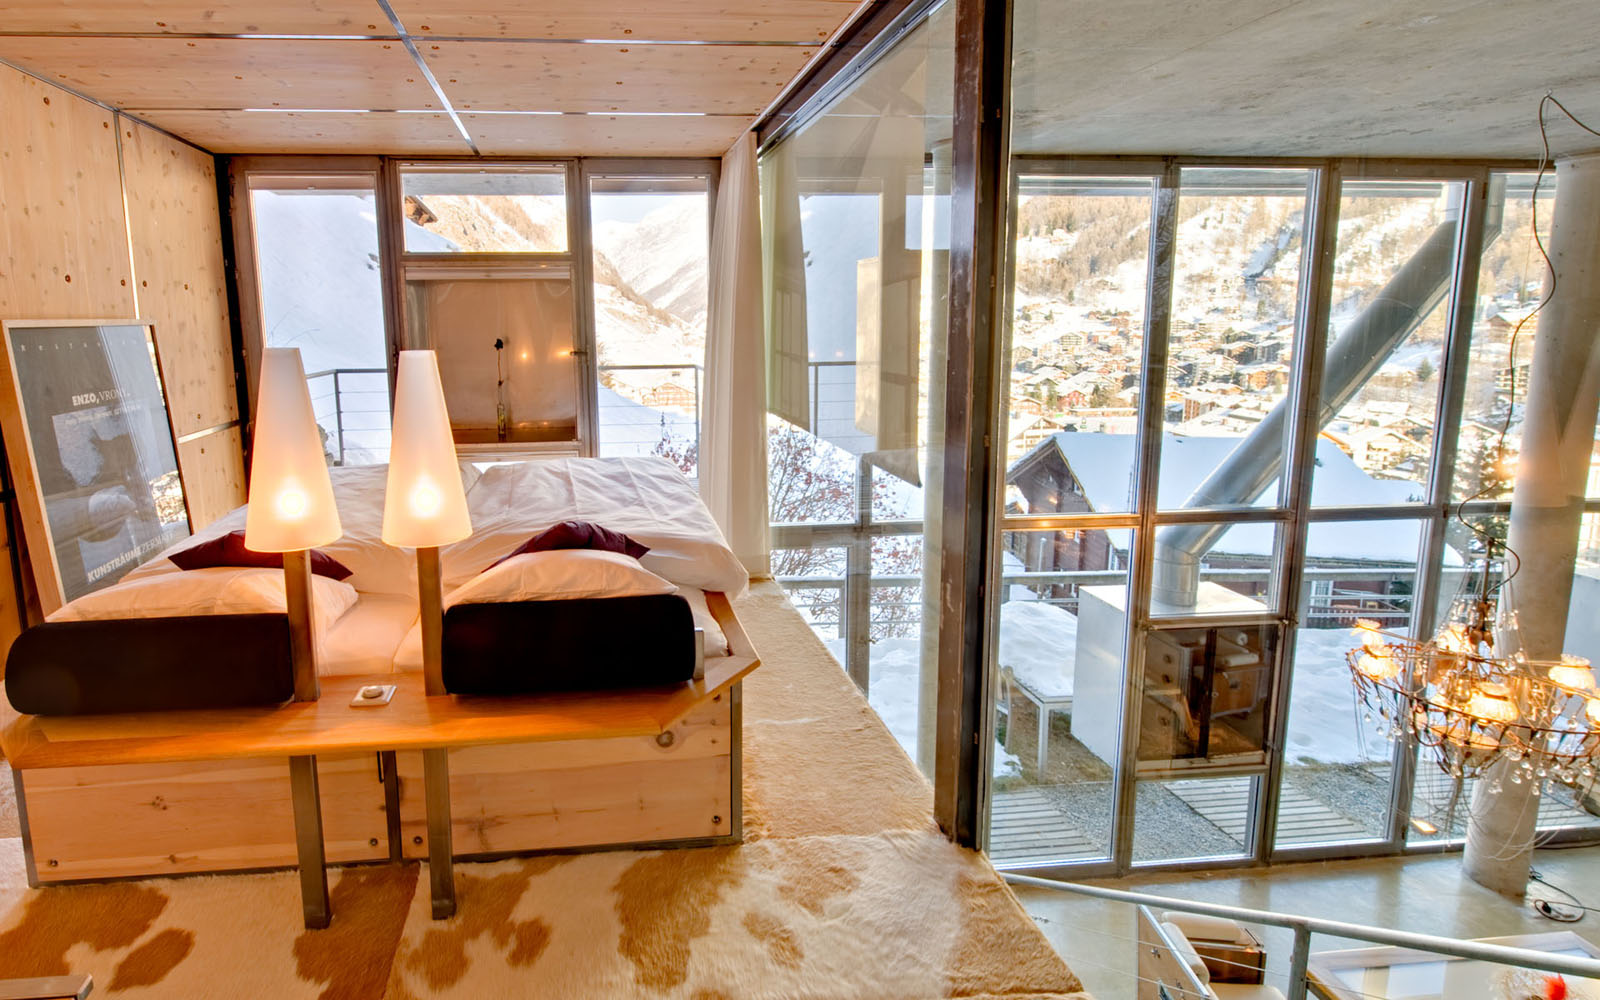 Heinz Julen Ultra Contemporary Mountain Chalet Loft